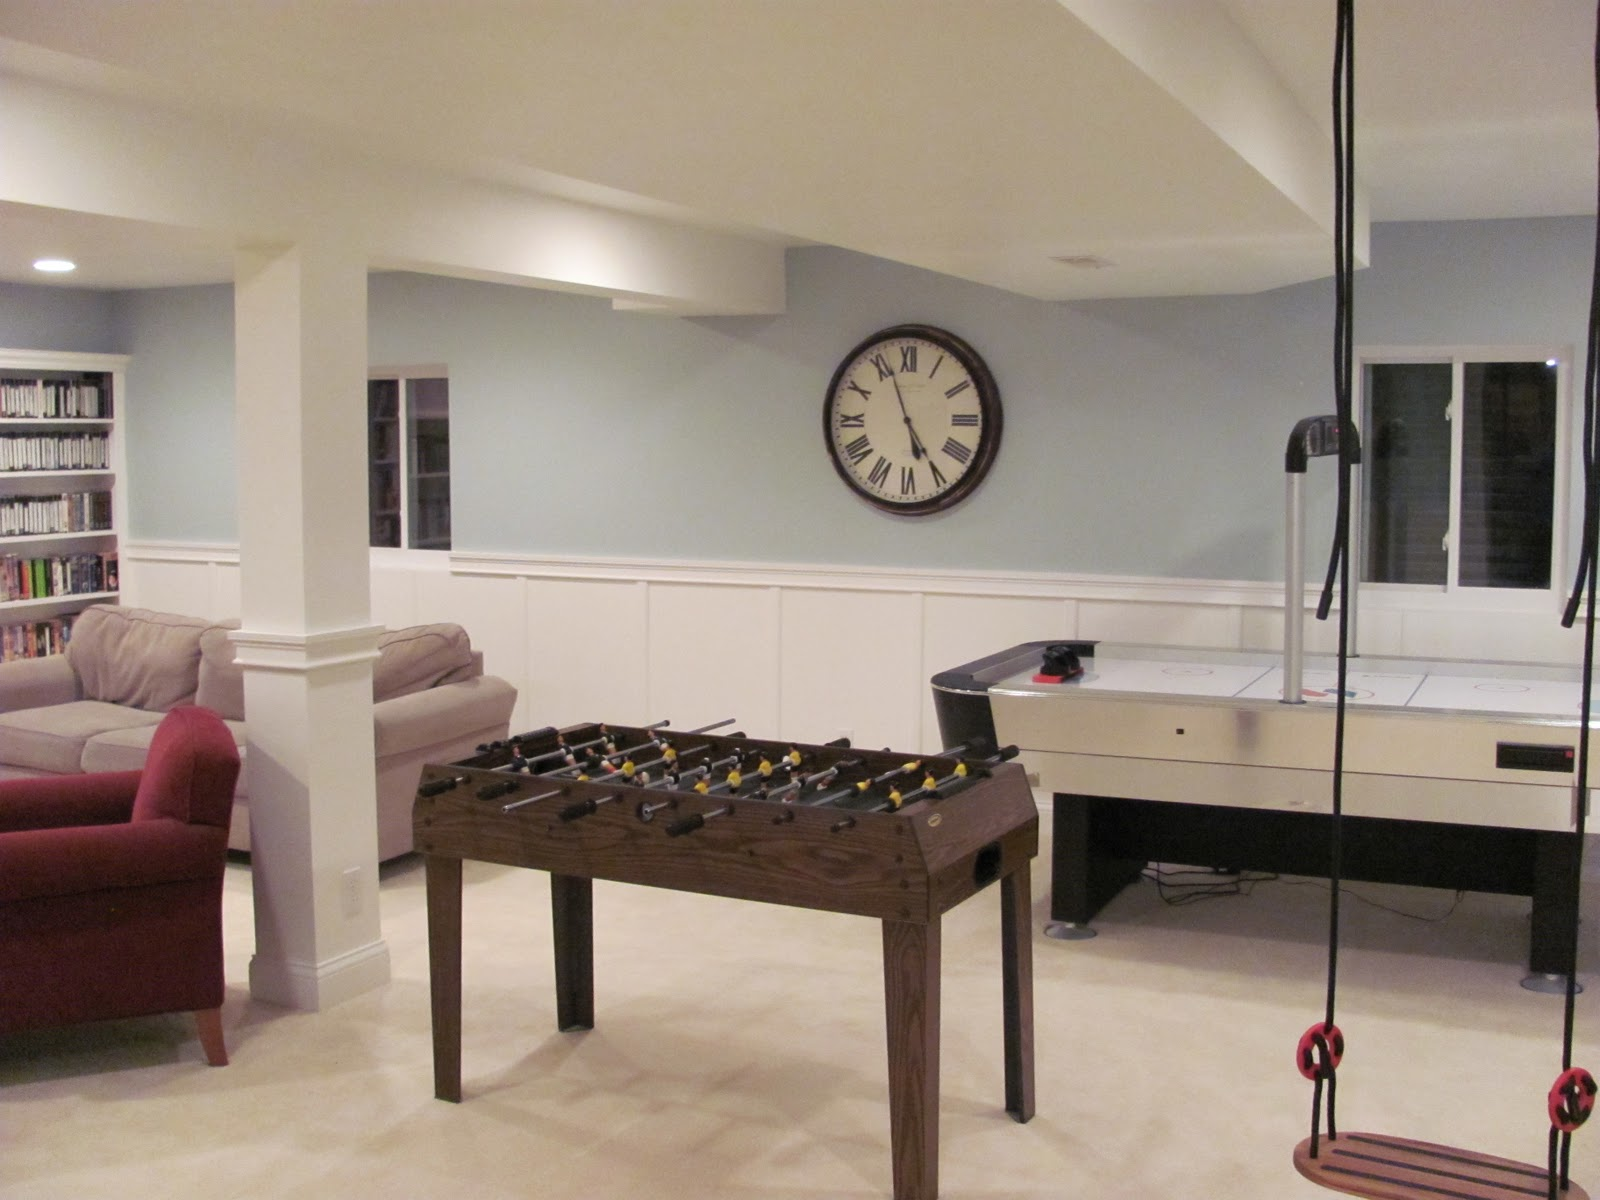 Header creative diy ideas to make a fun kid zone inside for Basement room